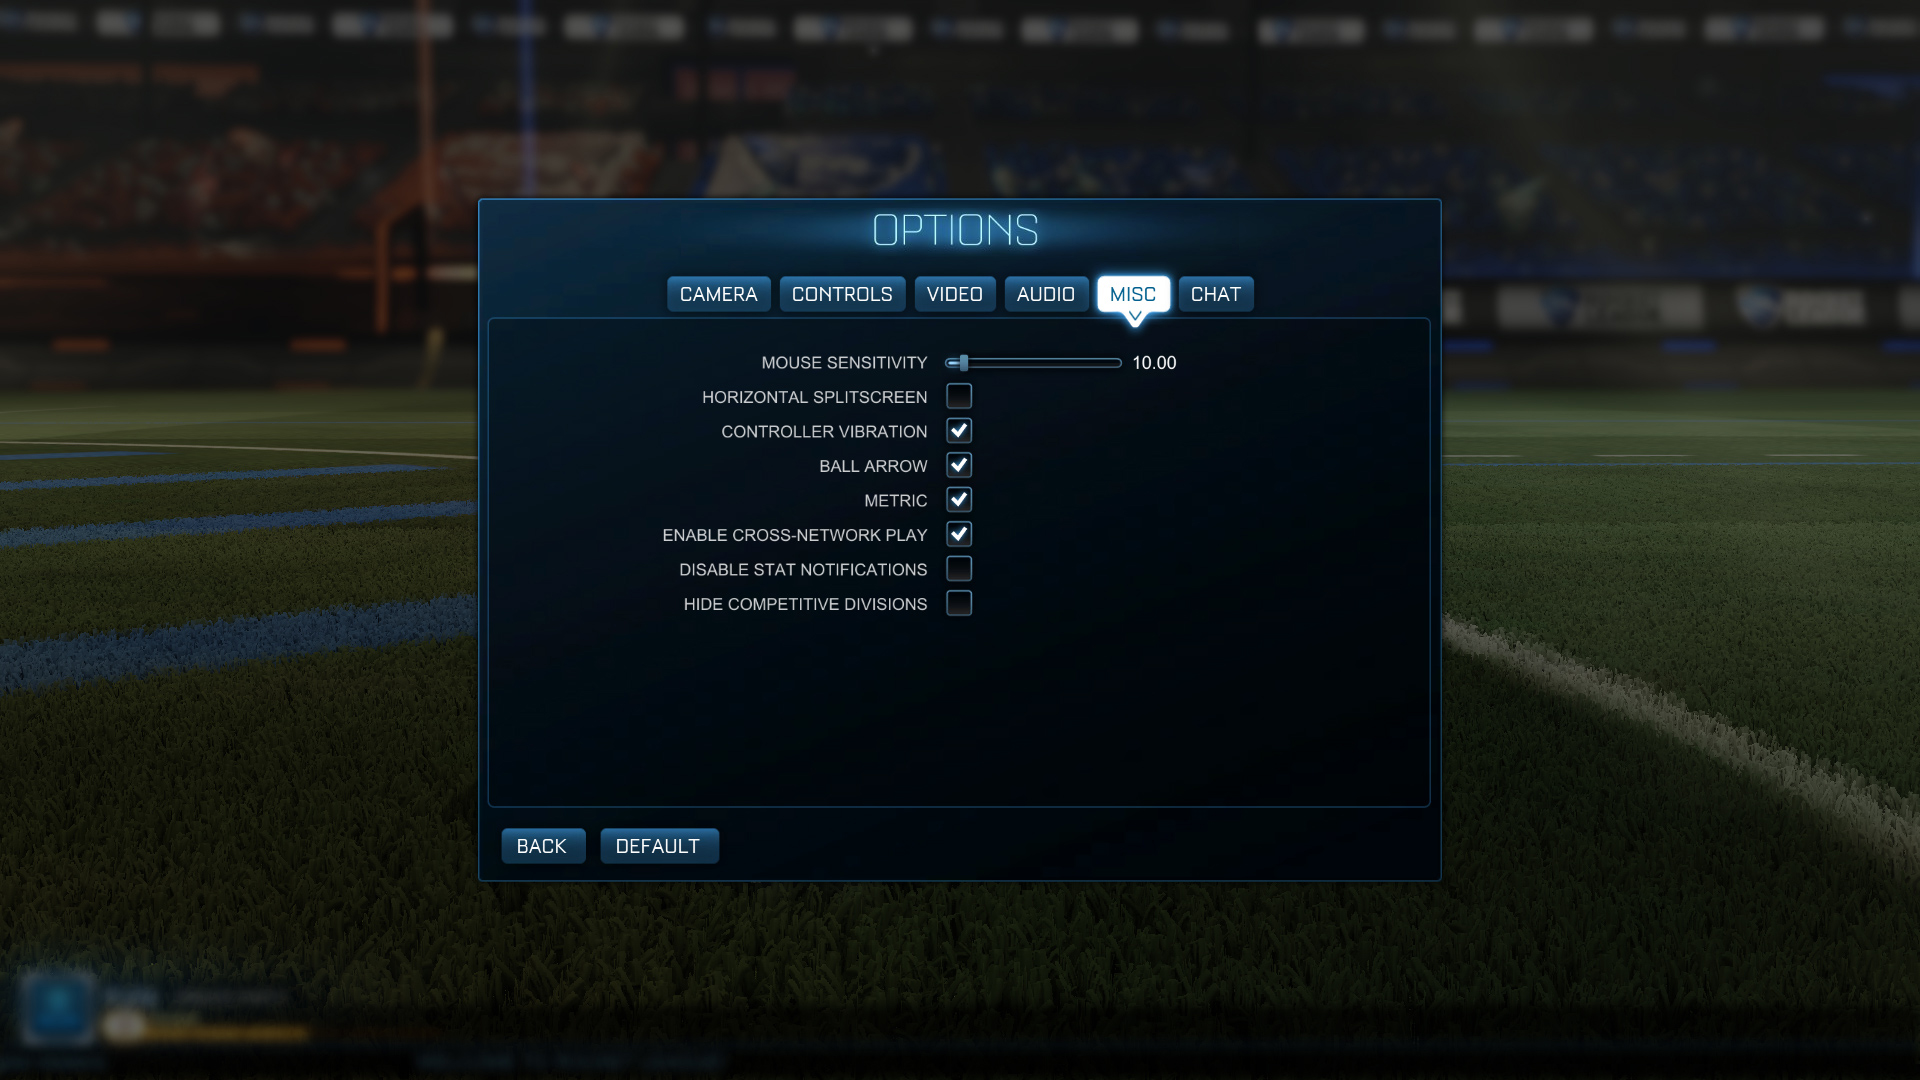 Rocket League is the first game to support cross-network play between ...